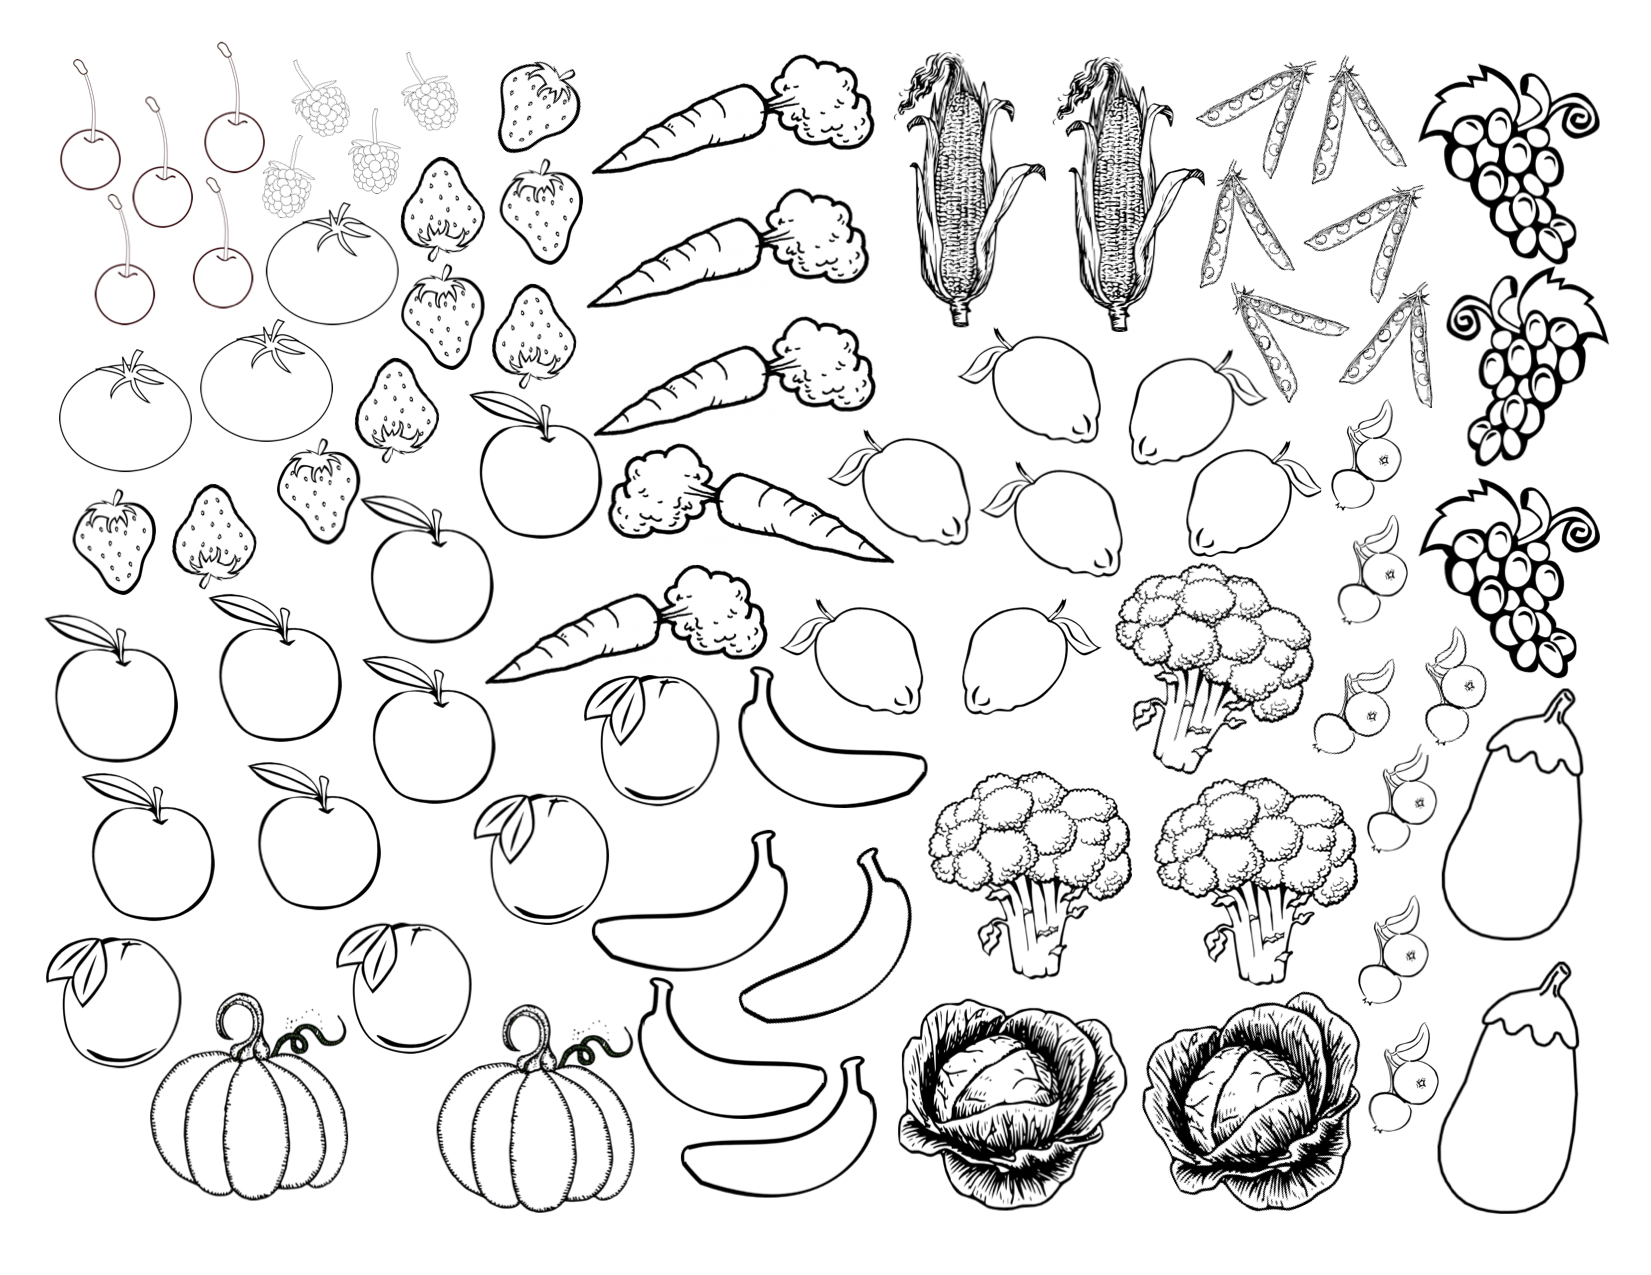 Fruits and vegetables coloring pages for kids printable for Coloring pages fruits and vegetables